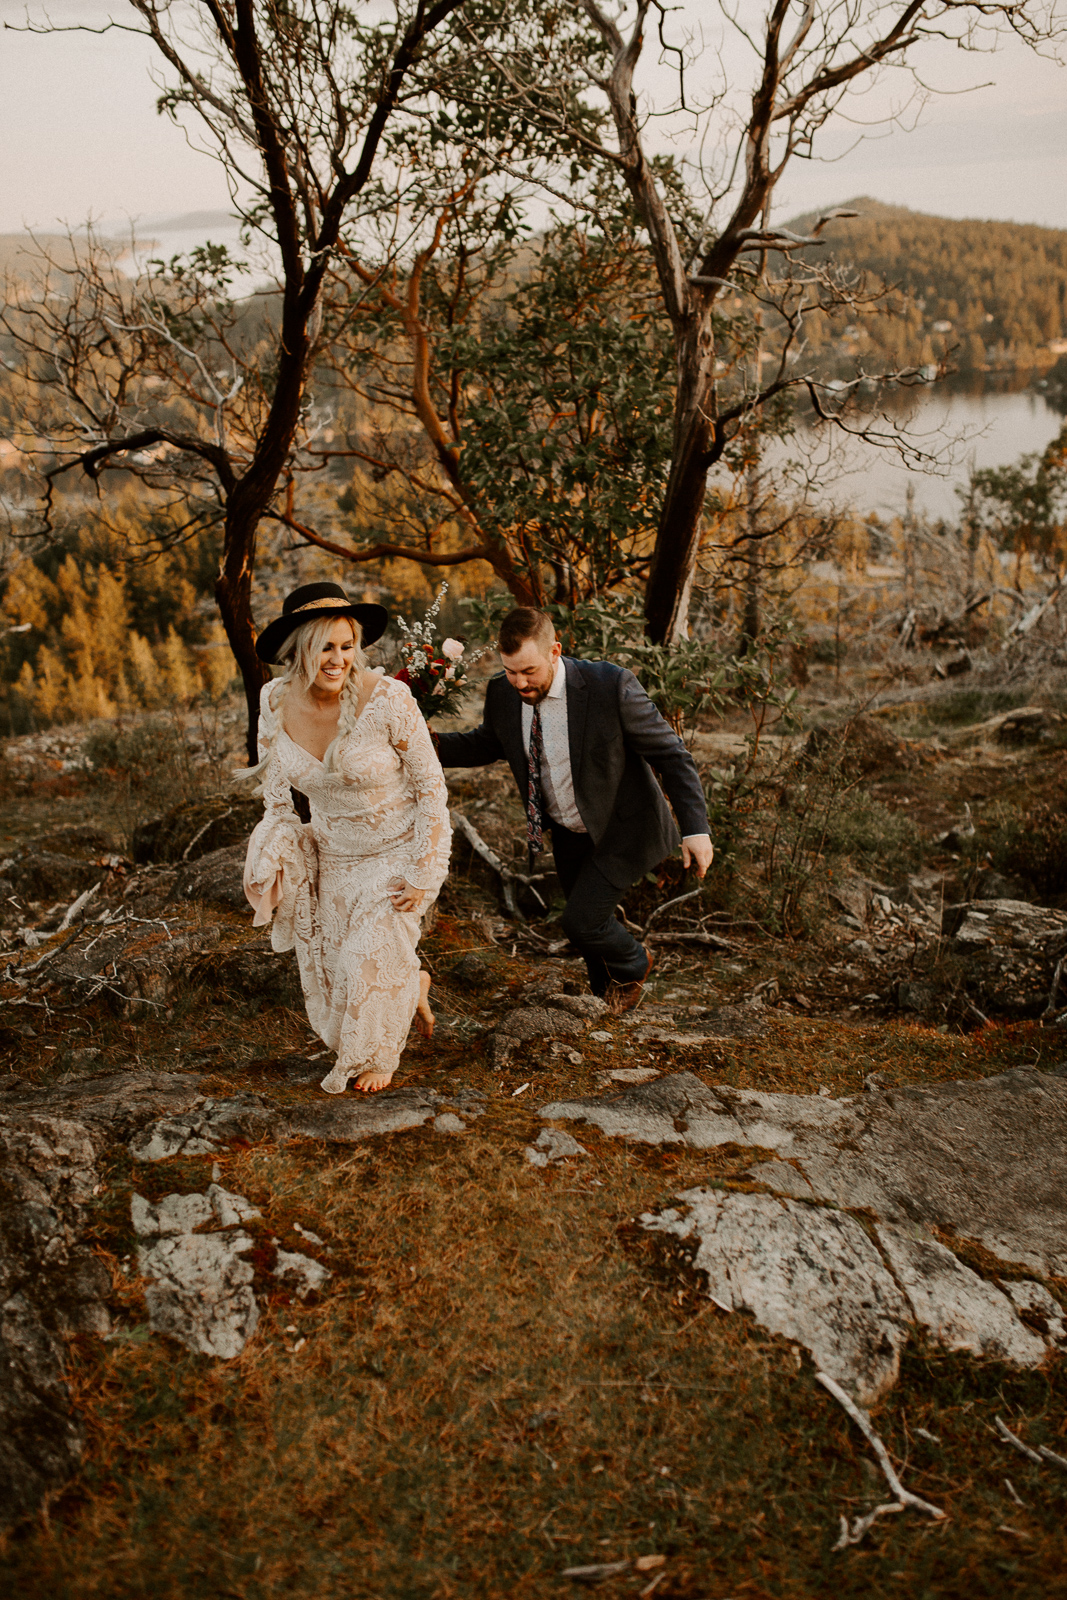 Luke Lambertson Photo_BritishColumbia_Canada_AdventurousCouple_Elopement_IMG-8337.jpg